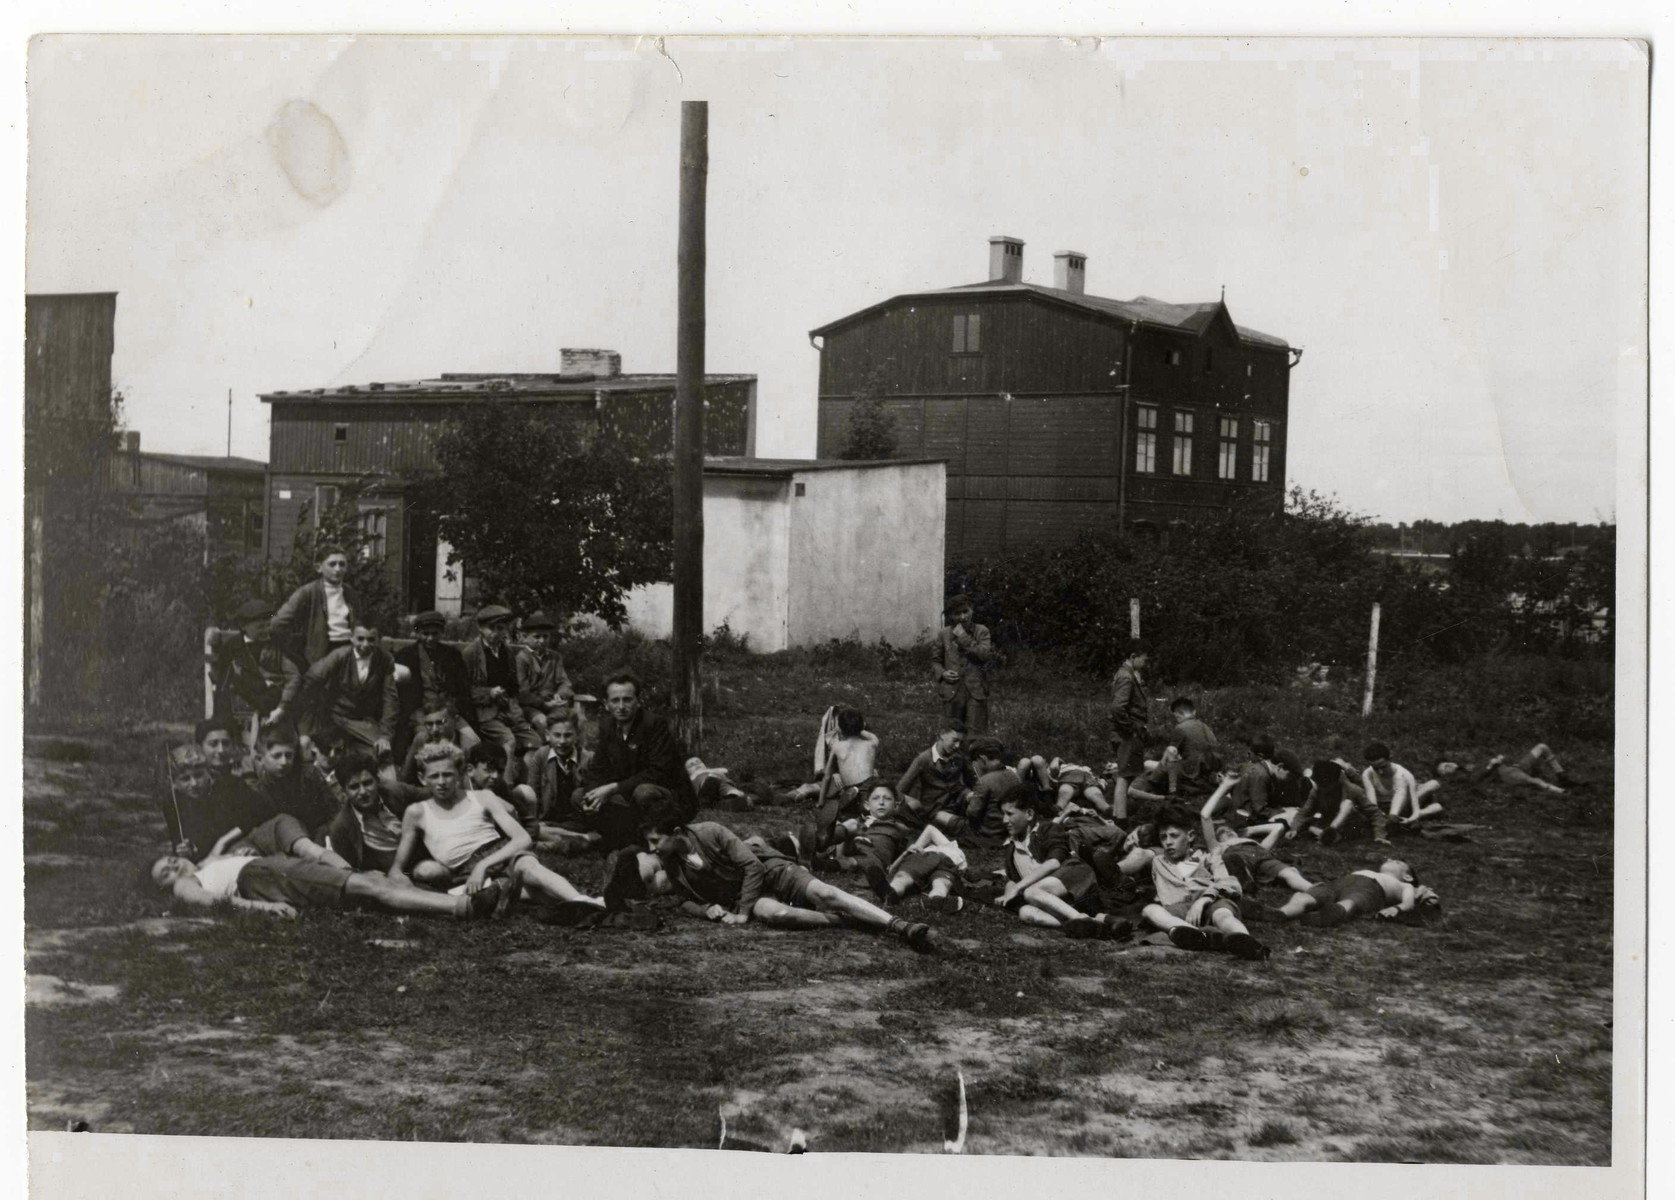 A crowd of children, some wearing athletic clothes, rests in a field in the Marysin colony of the Lodz ghetto.